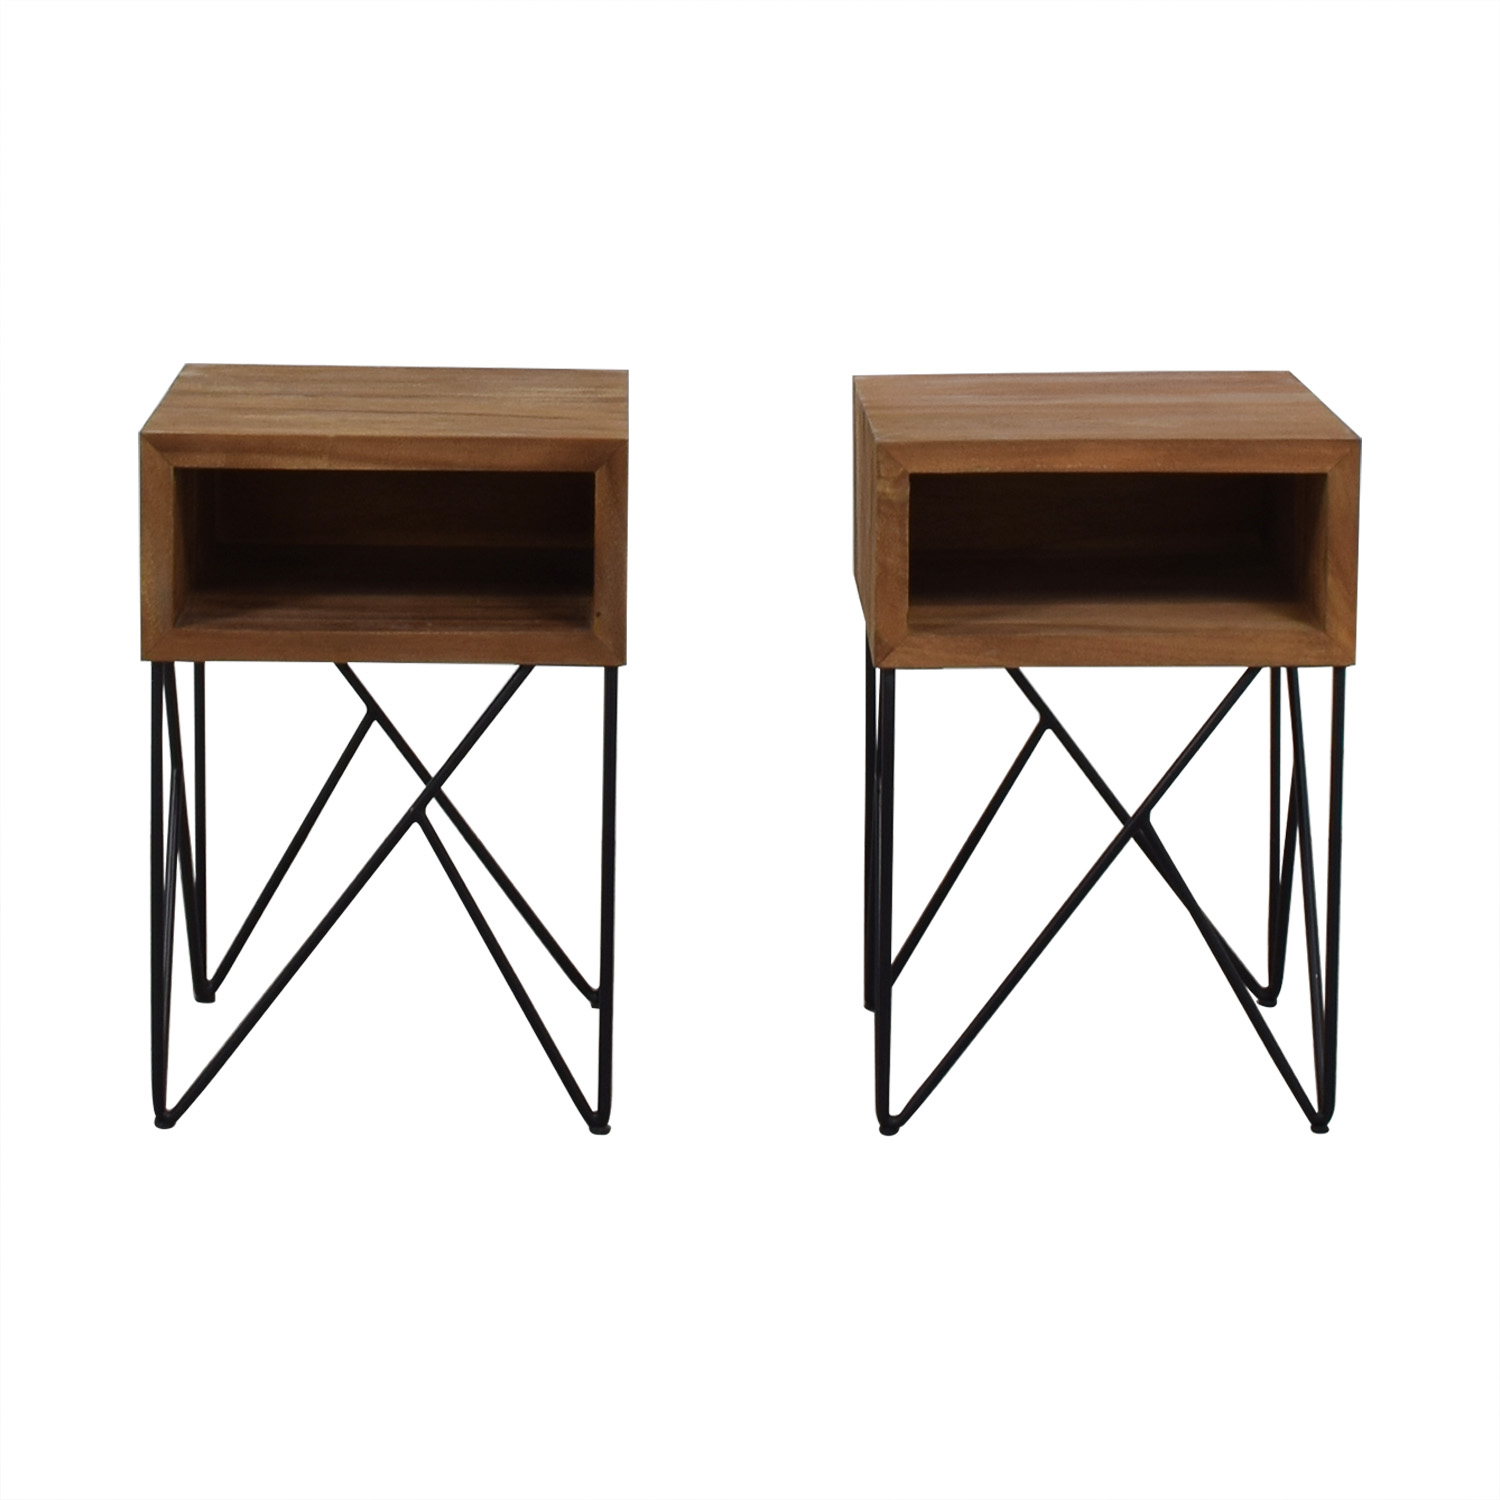 Crate & Barrel Crate & Barrel Dixon Side Tables dimensions